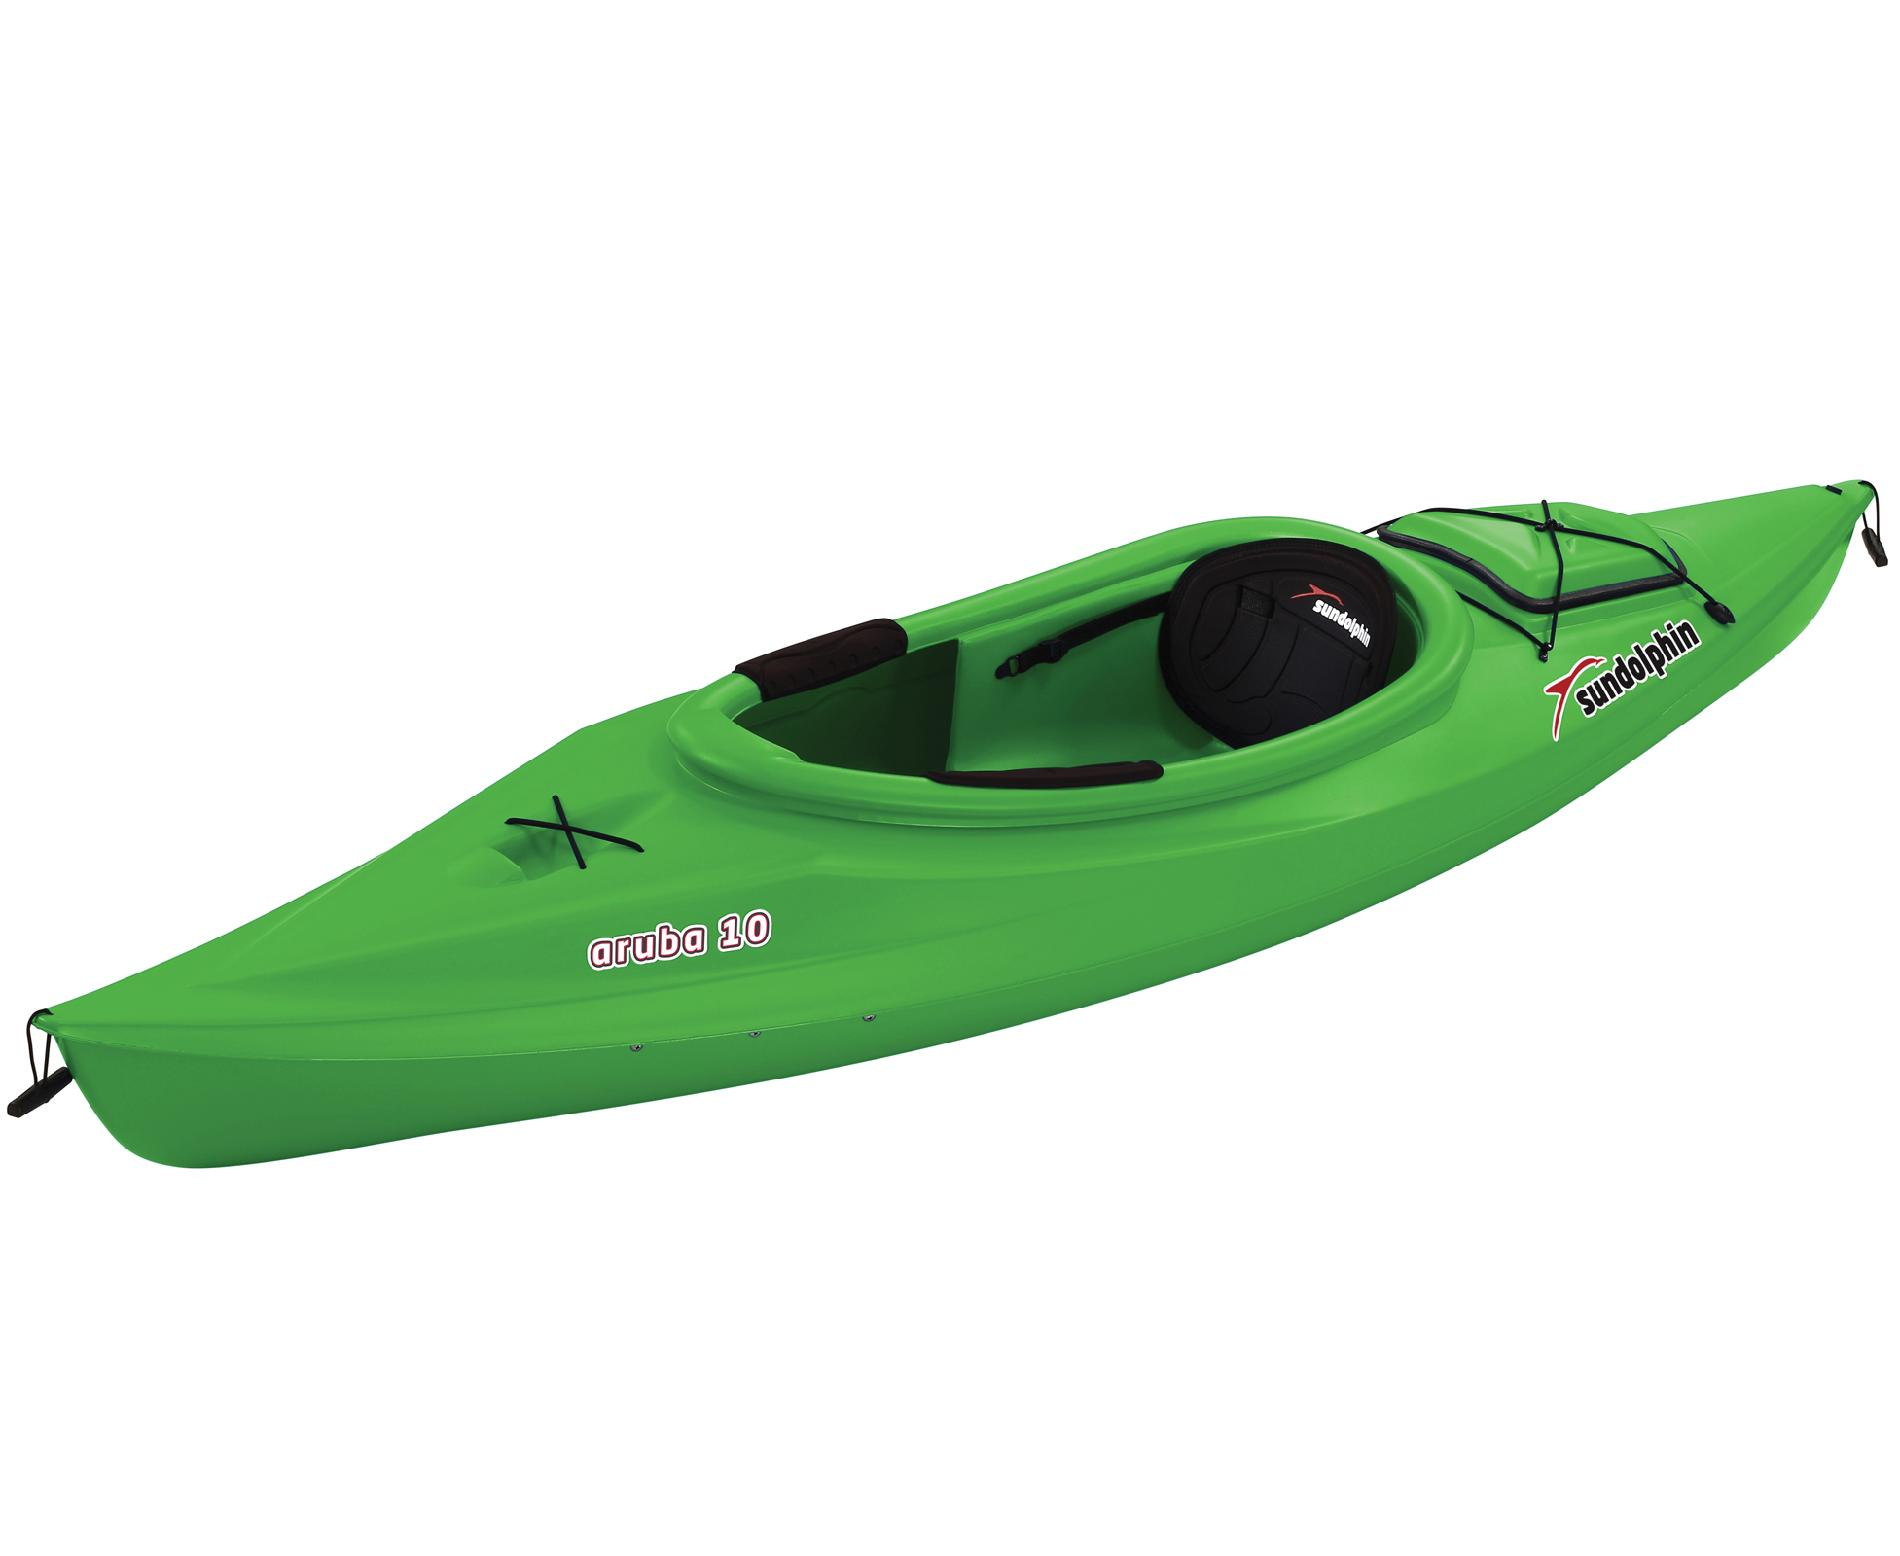 Aruba-10-1-Person-Sit-In-Kayak-in-Lime-Green-with-Adjustable-Padded-